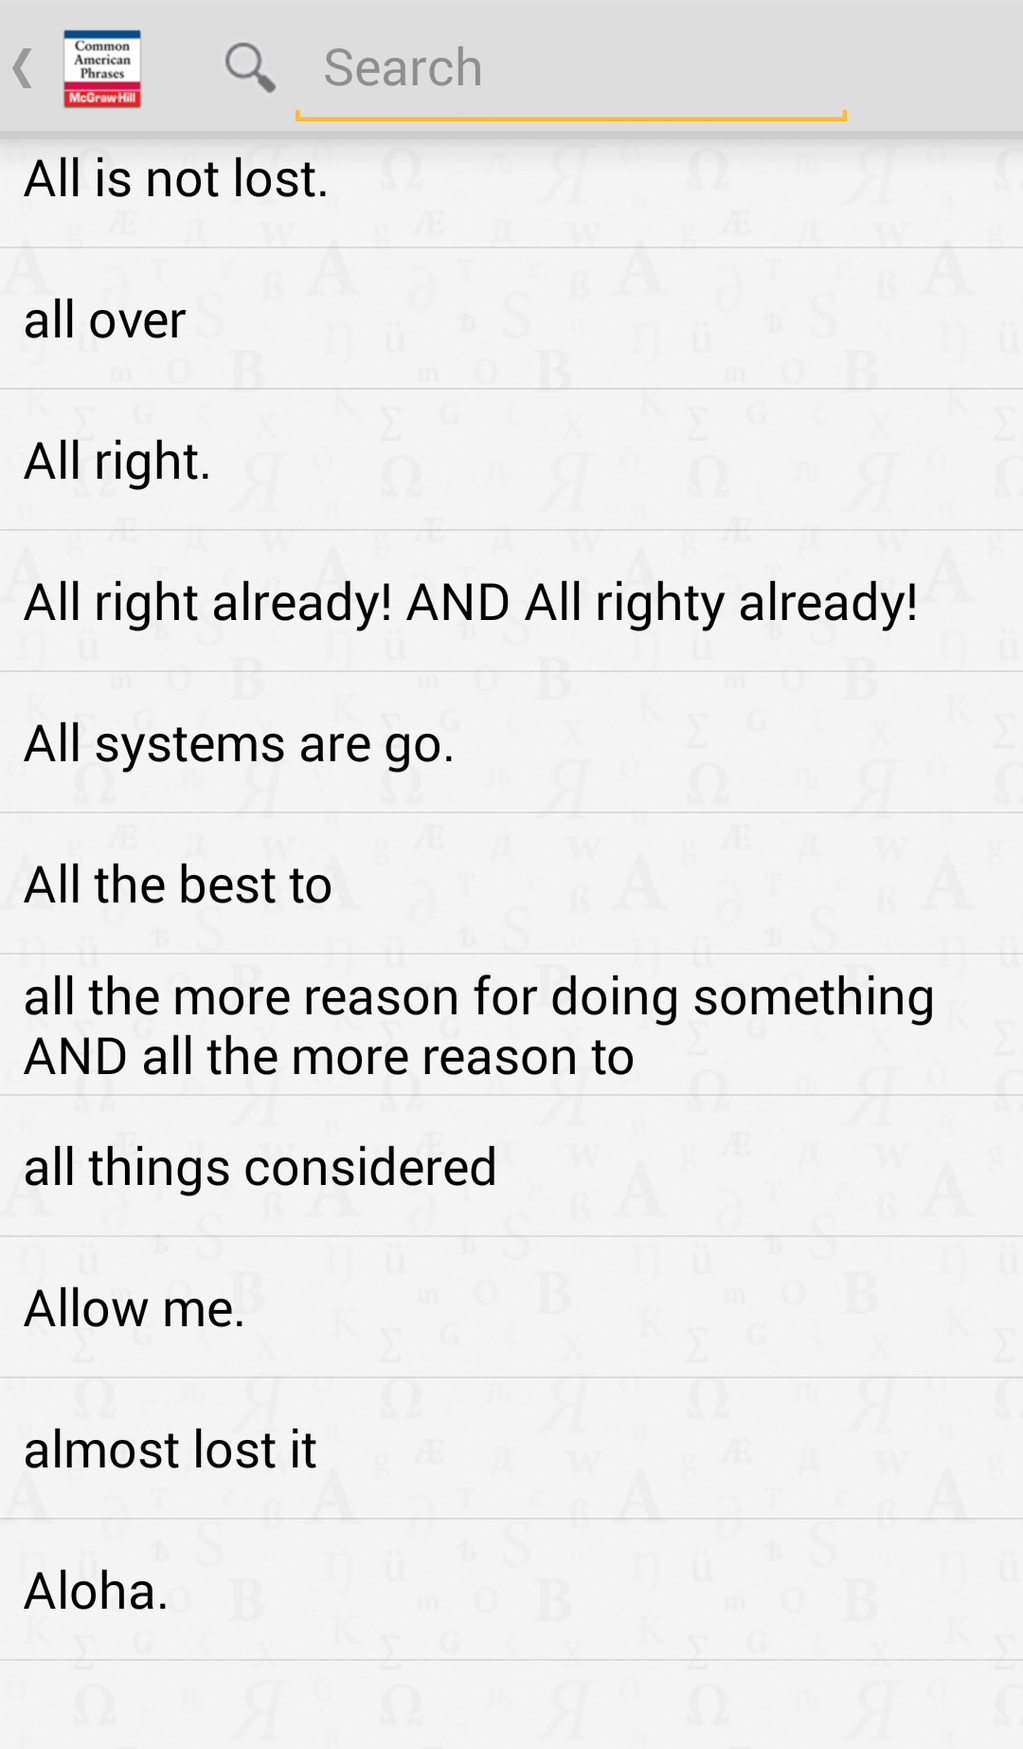 Common American Phrases in Everyday Contexts Screenshot 3